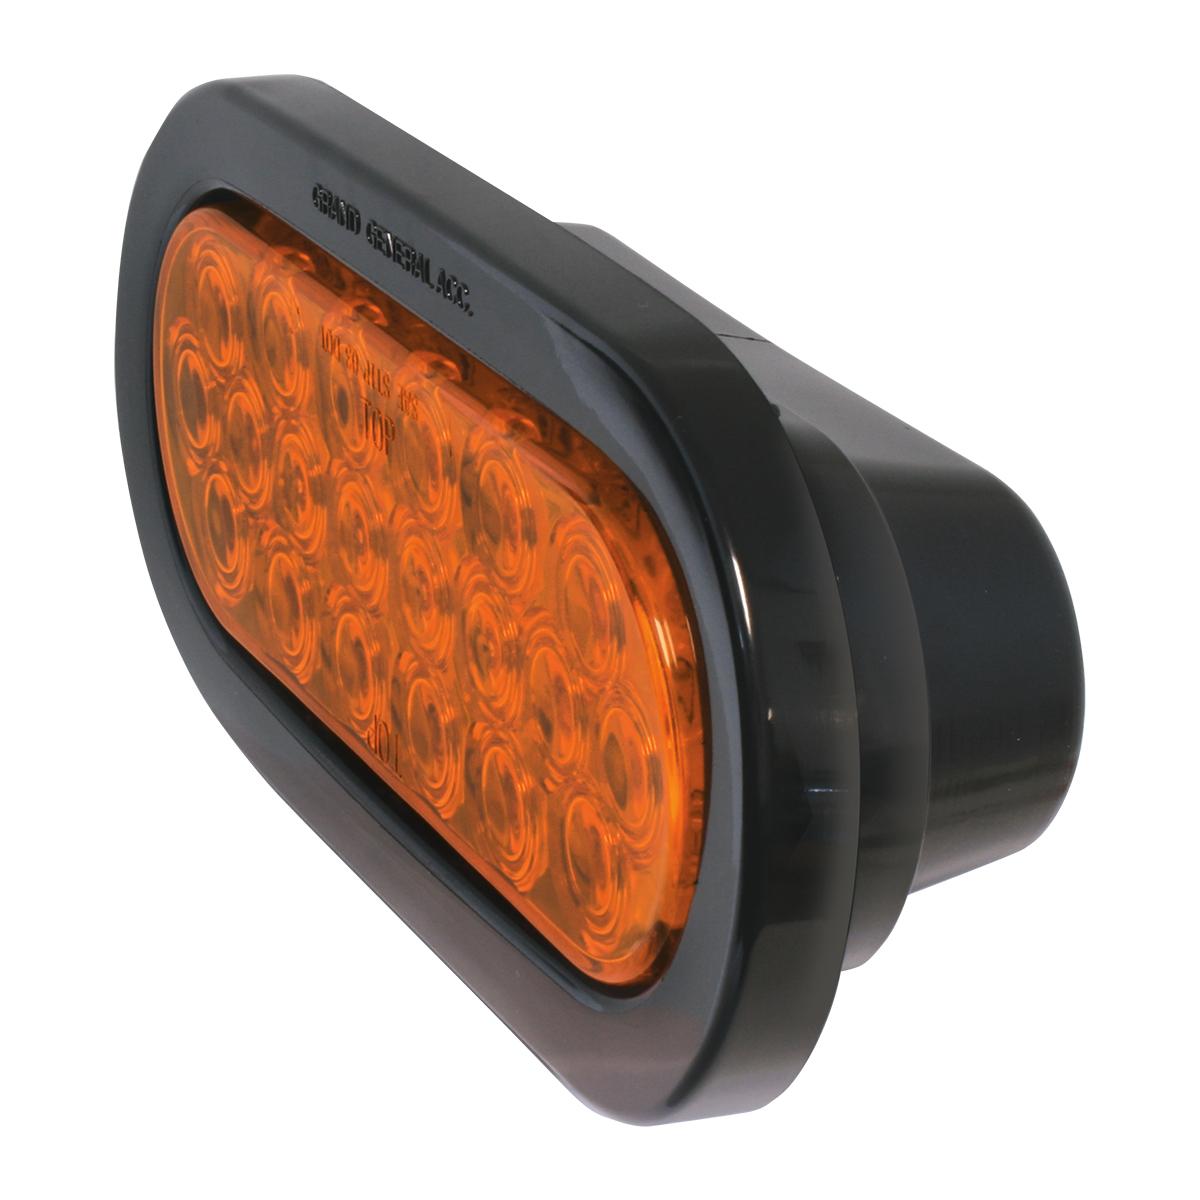 80665 Large Oval Closed Back Rubberized Vinyl Grommet with Amber Pearl LED Light (Not Included)